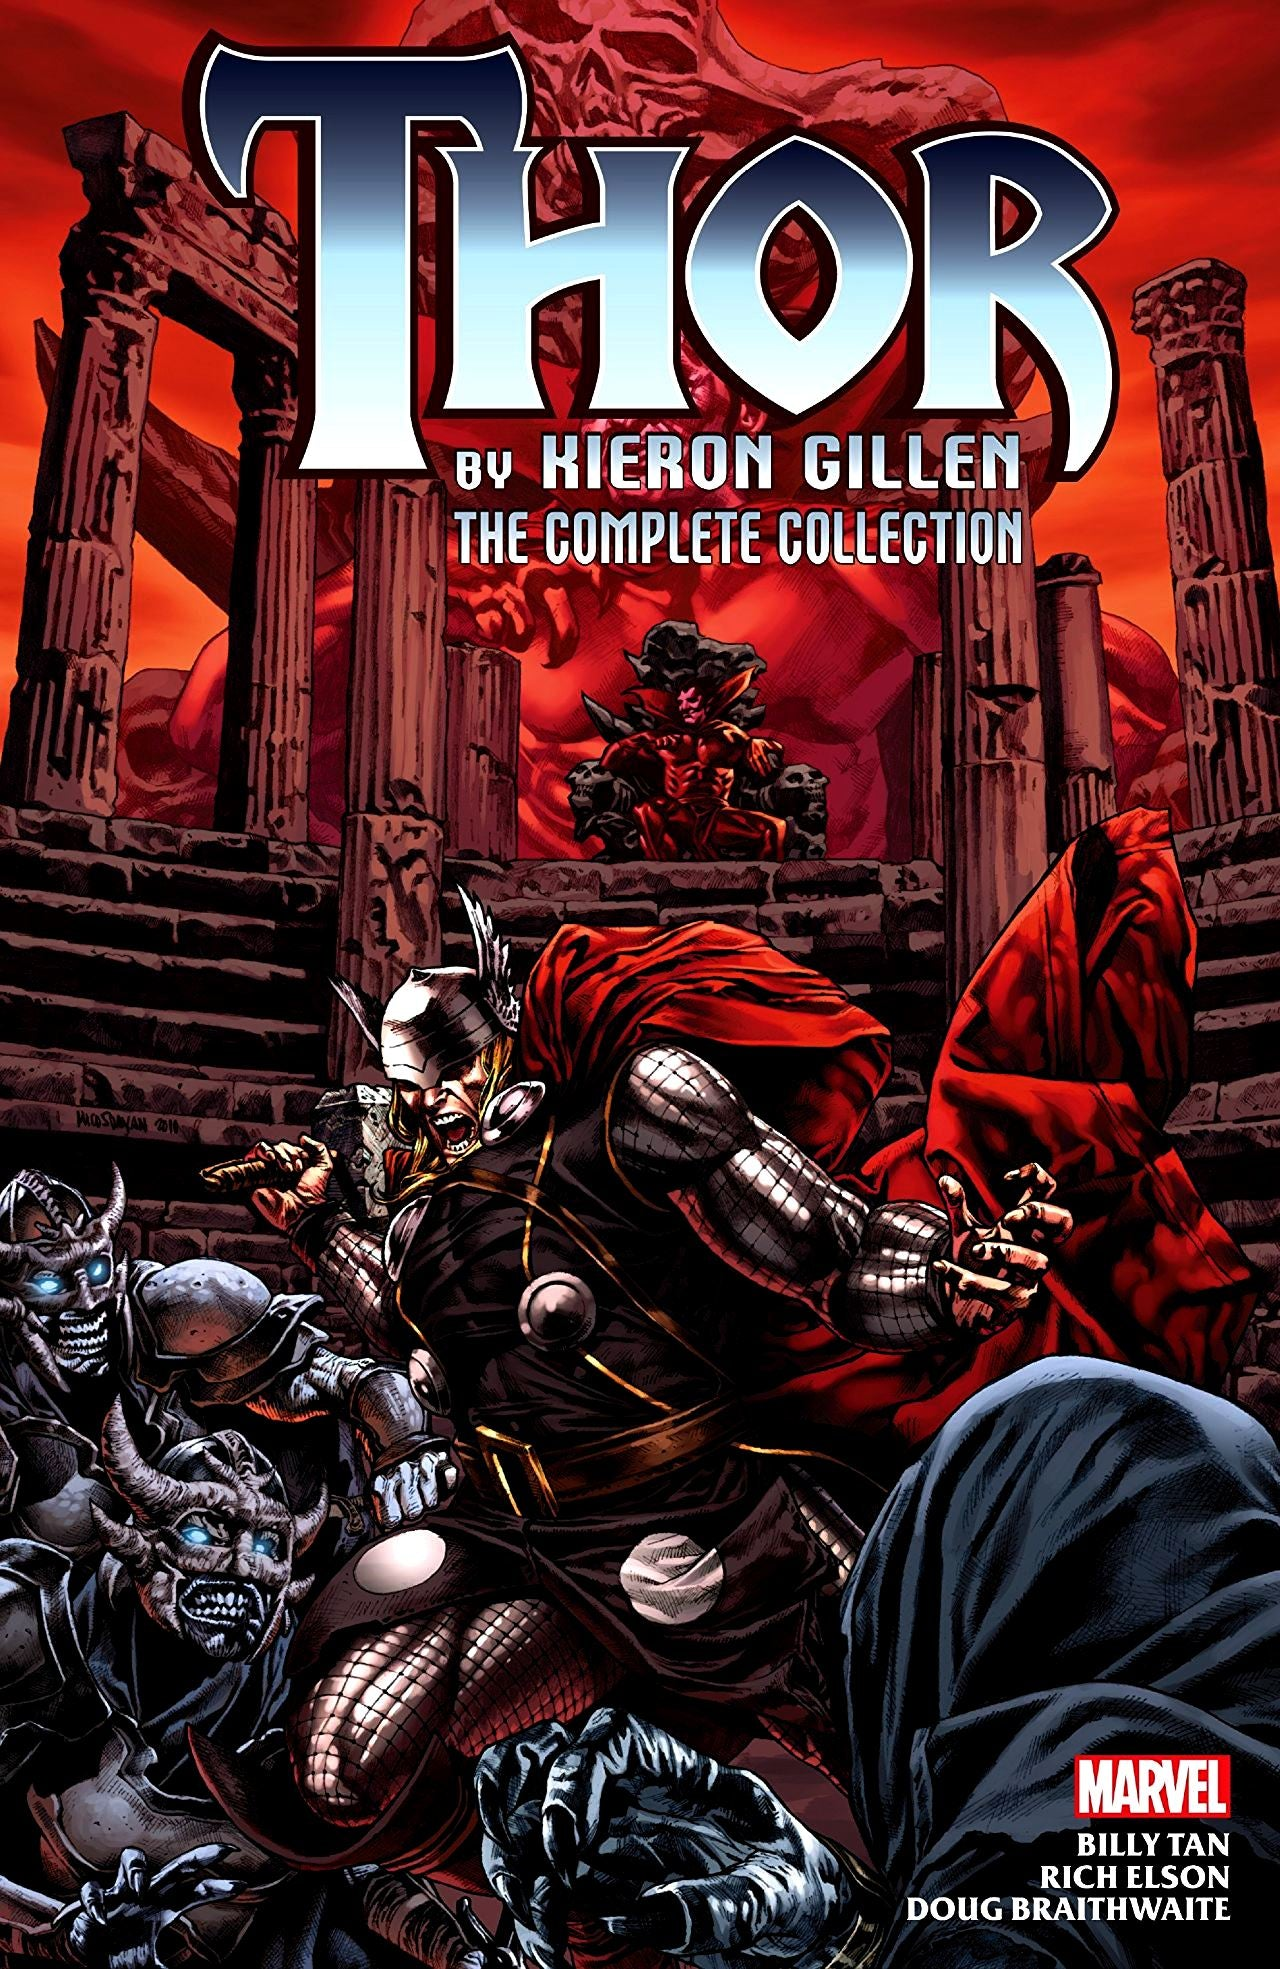 Thor by Kieron Gillen - The Complete Collection